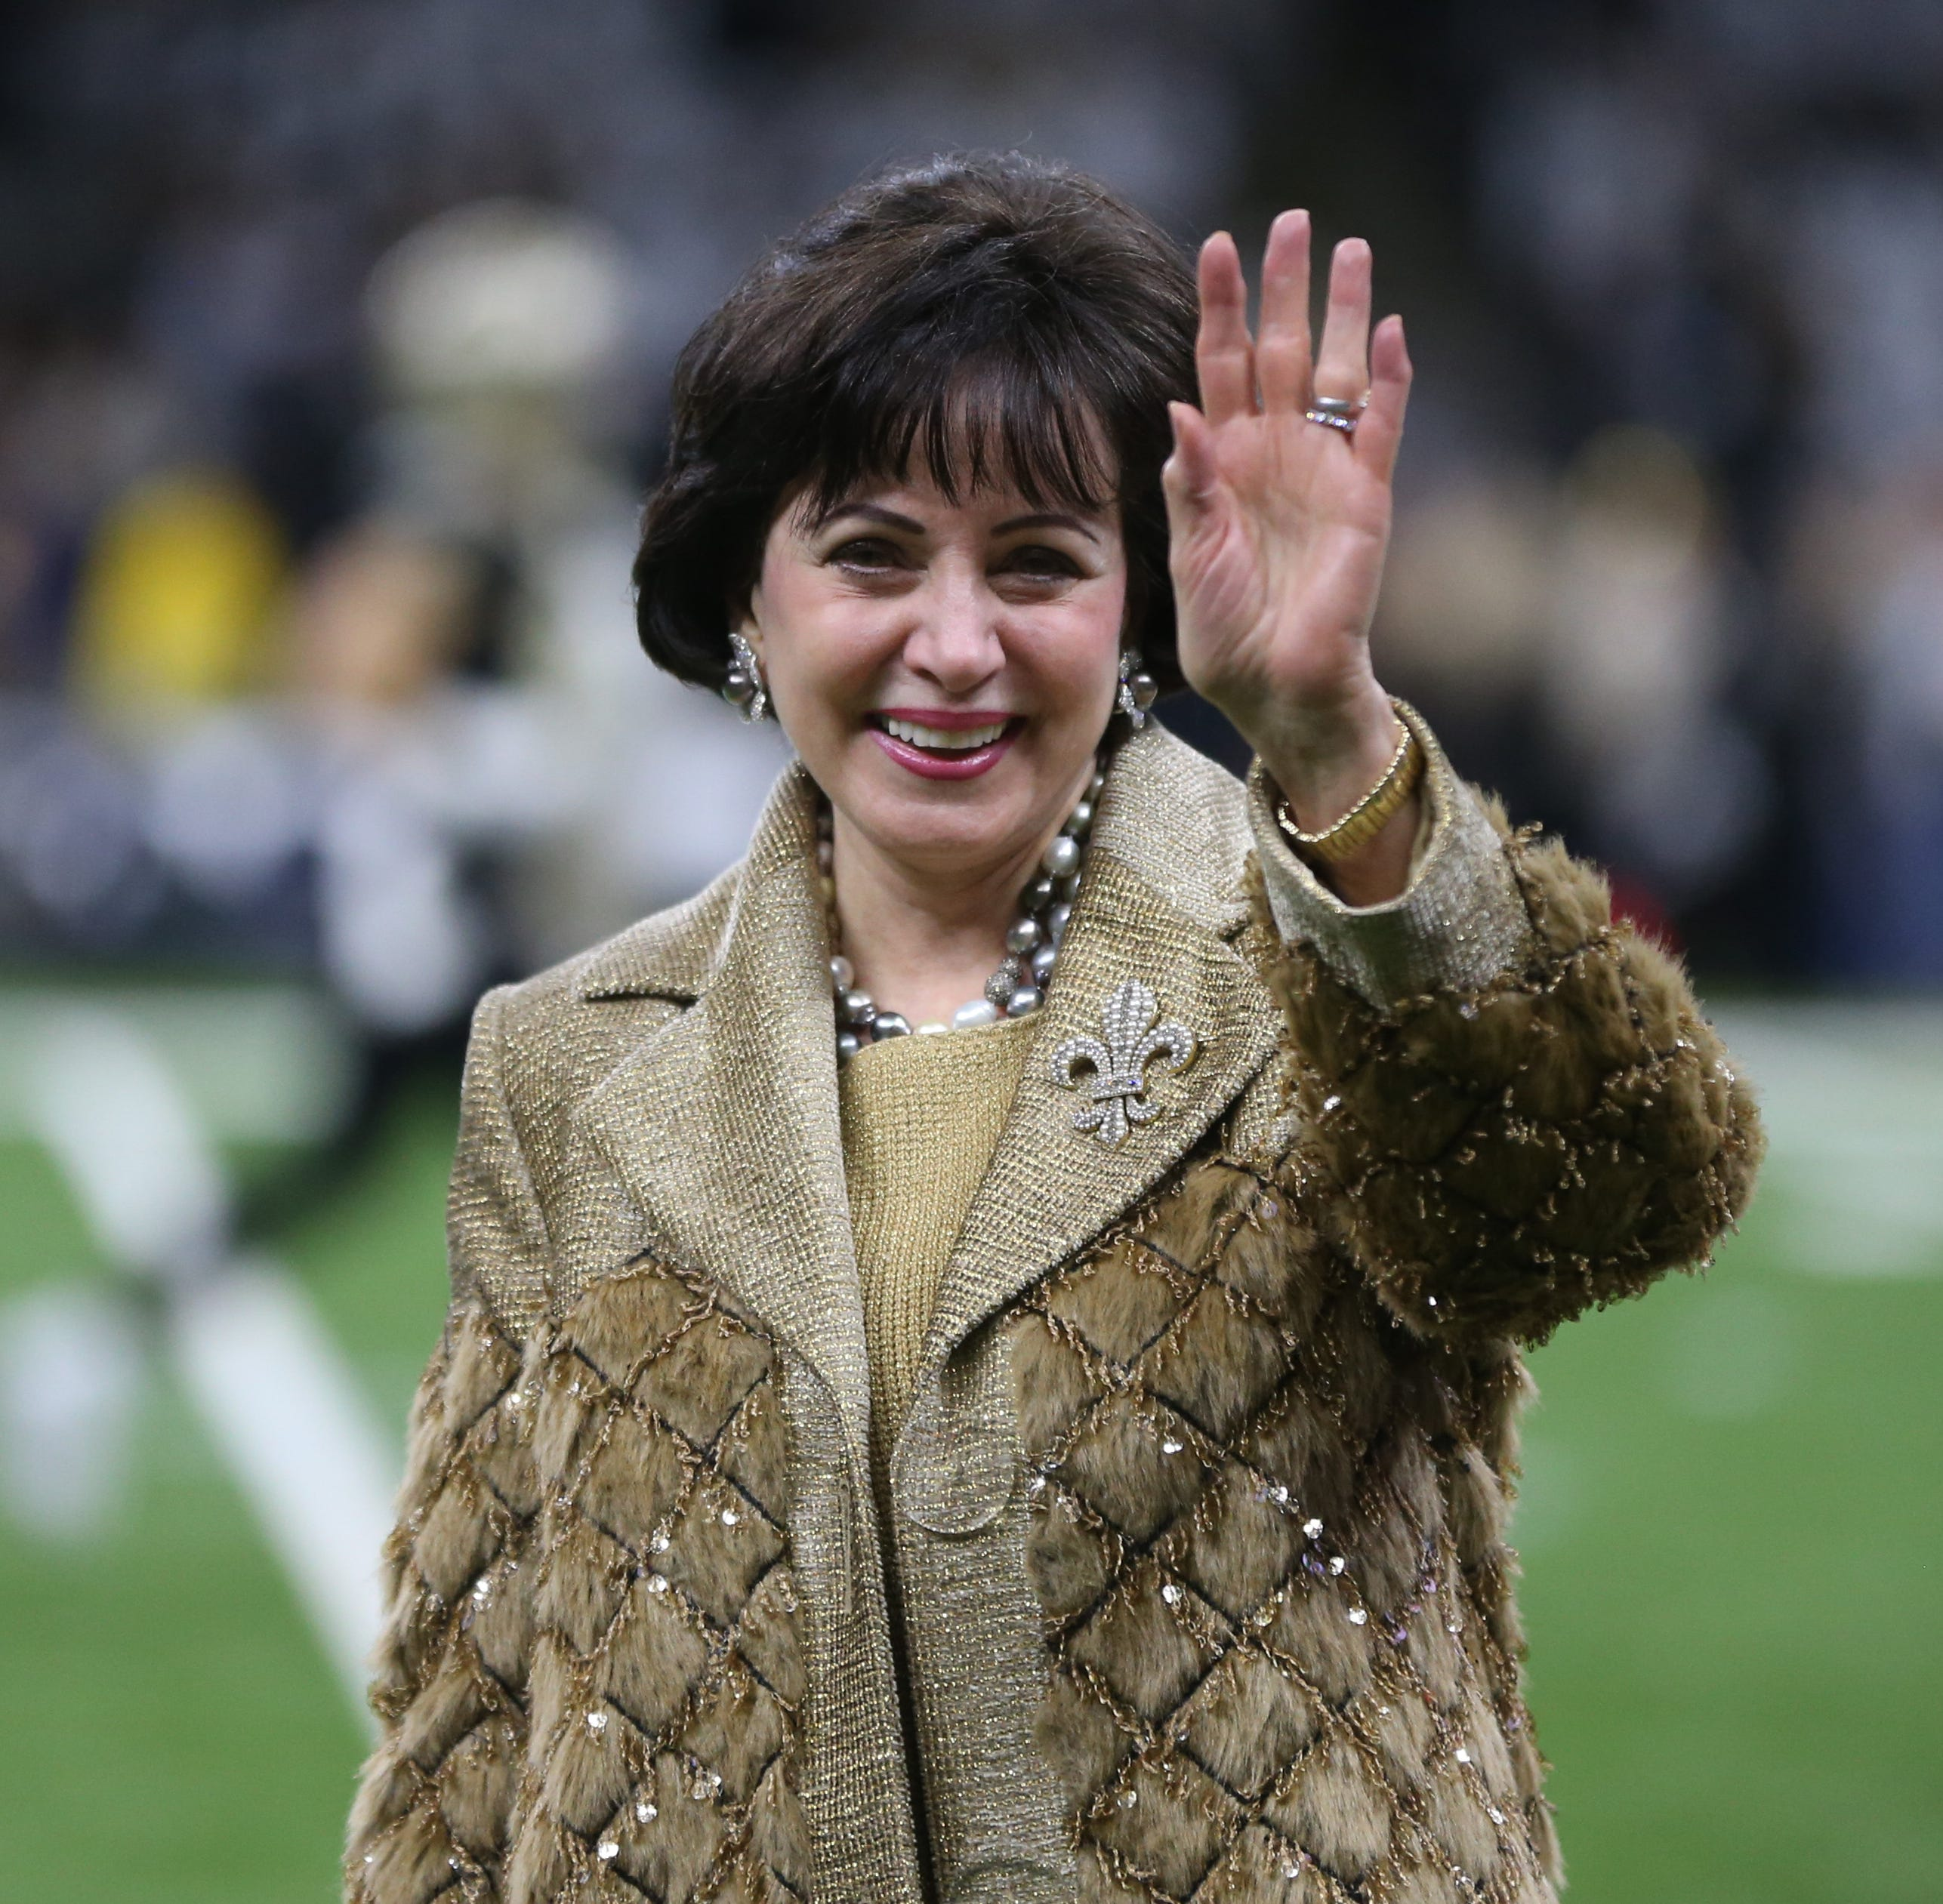 Meet New Orleans Saints owner Gayle Benson, who might just be the most powerful woman in the NFL